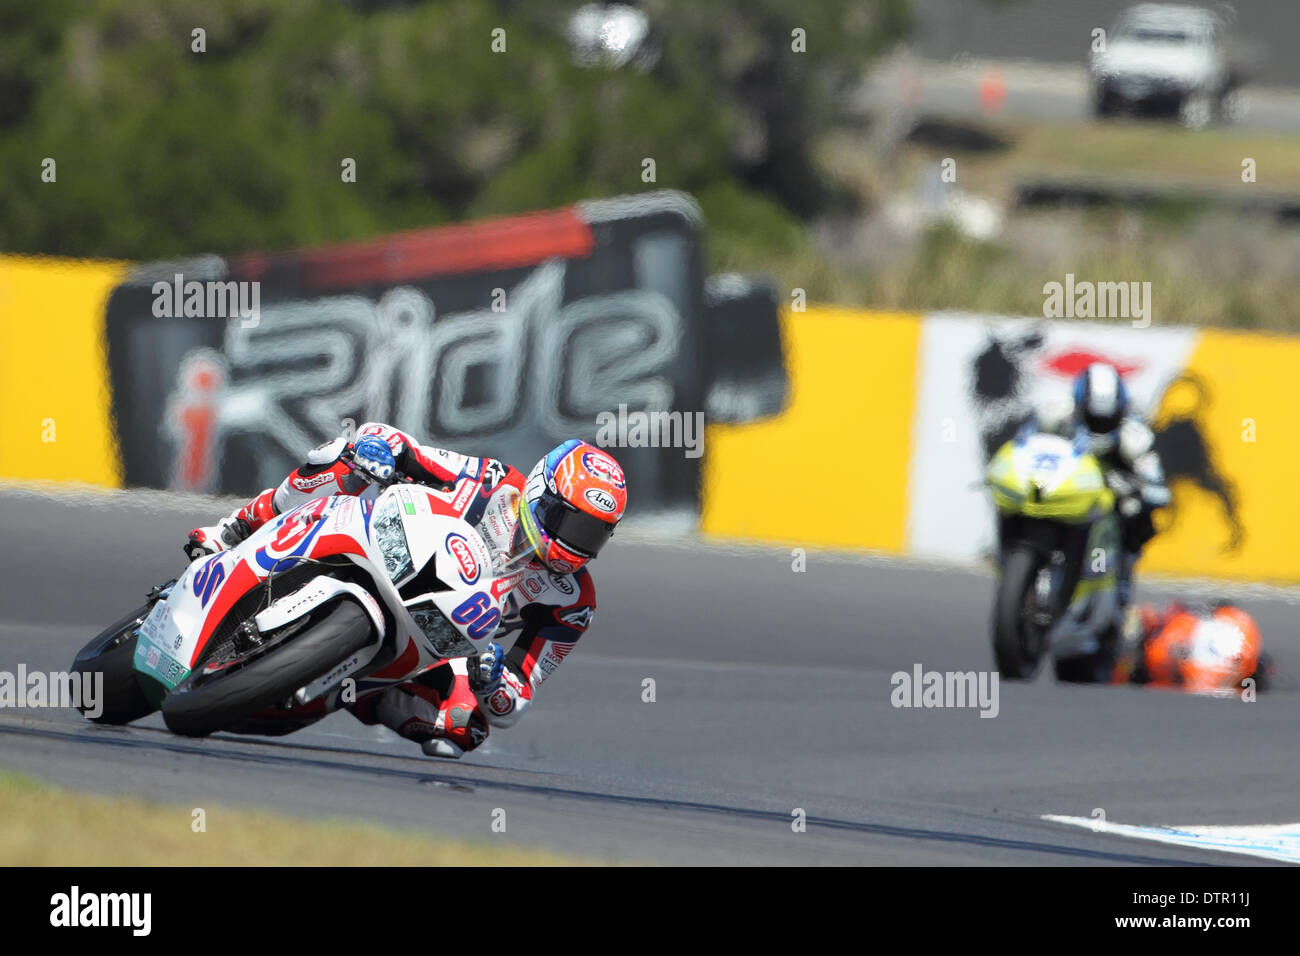 Phillip Island Grand Prix, Australia. Sunday, 23 February, 2014. Round 1, 2014 FIM World Superbike Championship. Michael van der Mark enters MG corner at the Phillip Island Grand Prix Circuit during the World Supersport Race. Despite a strong showing over the weekend van der Mark did not finish the World Supersport Race. Credit:  Russell Hunter/Alamy Live News - Stock Image